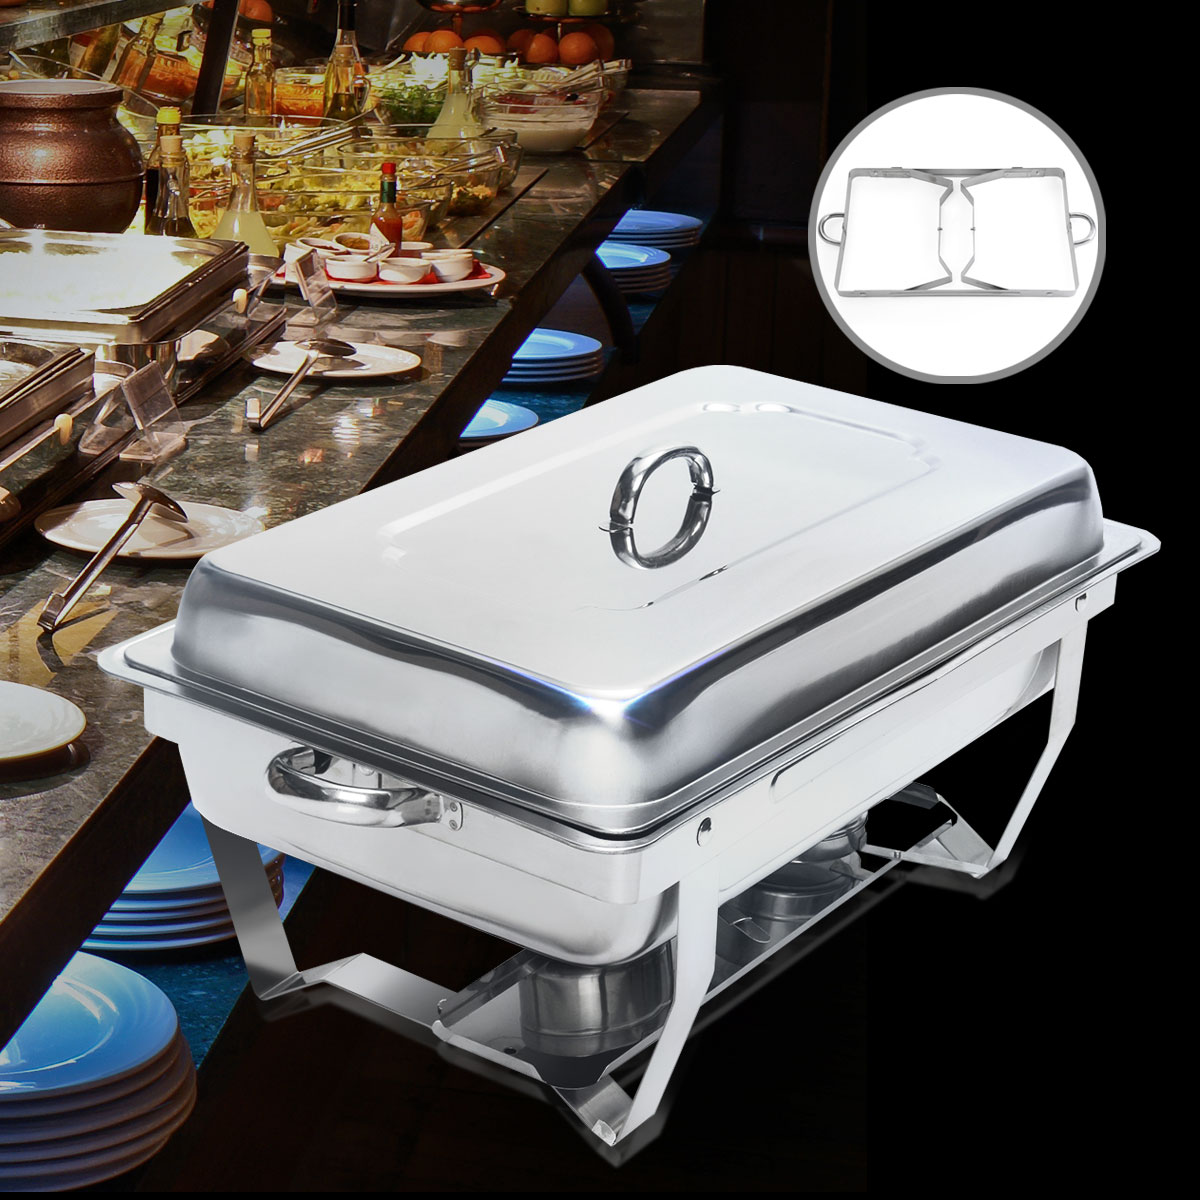 New 9 Quart Stainless Steel Rectangular Chafing Dish Full Size Buffet Chafer Catering Serving Set Easy to Clean Keep warm